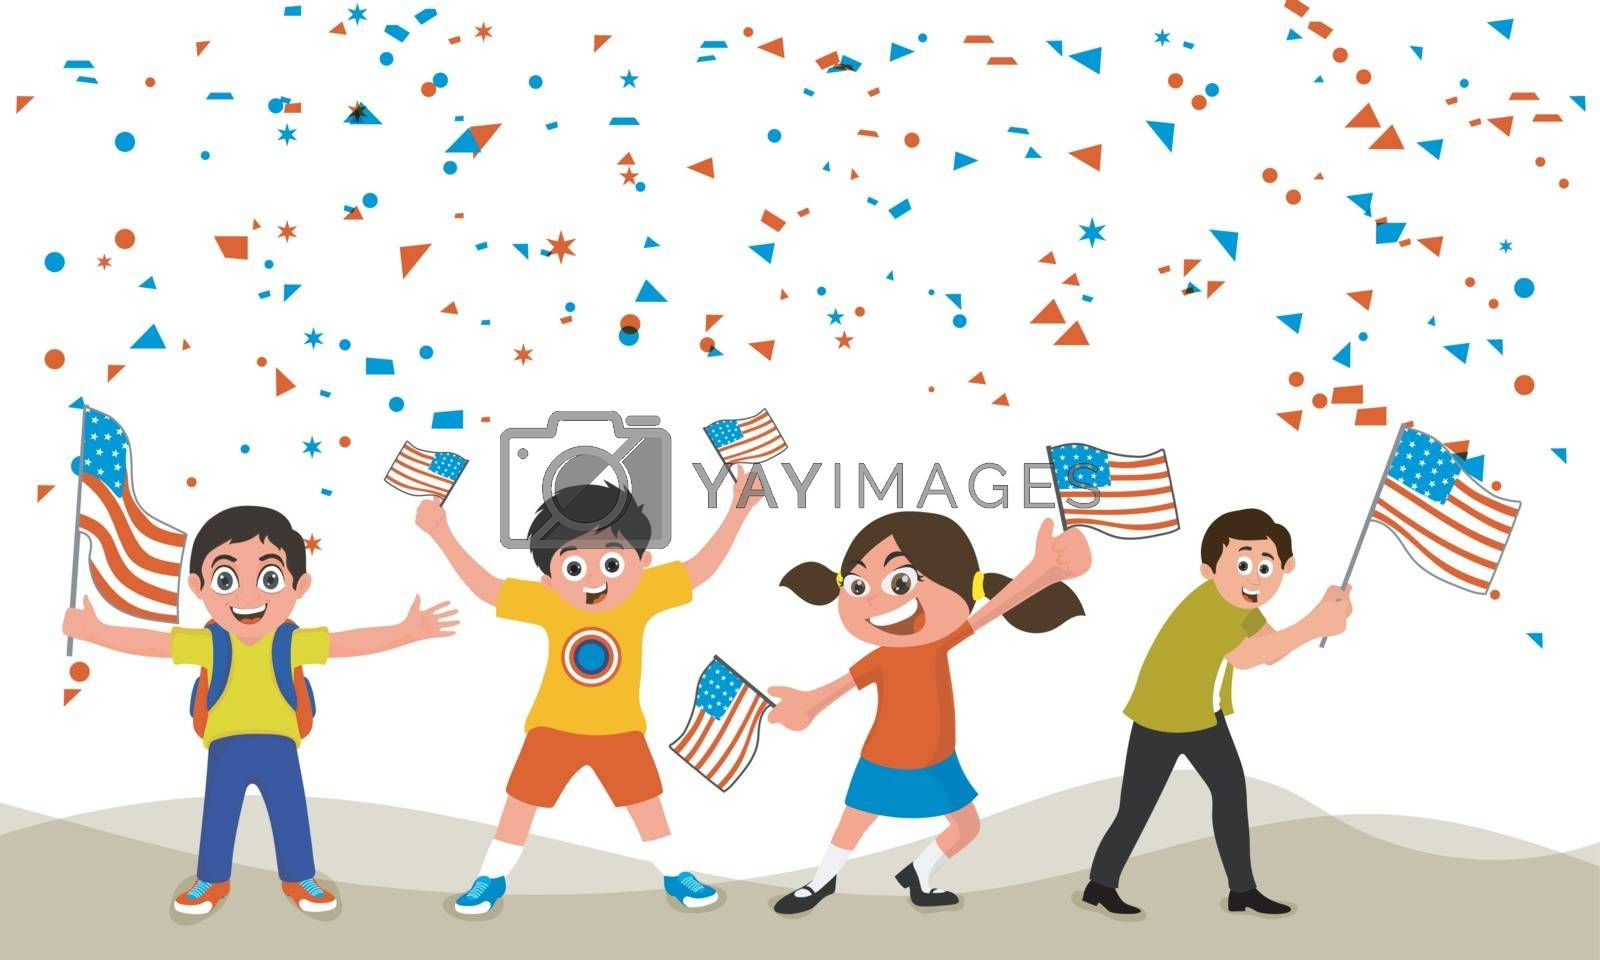 Cute little kids waving American Flags on falling confetti background for 4th of July, Independence Day celebration.